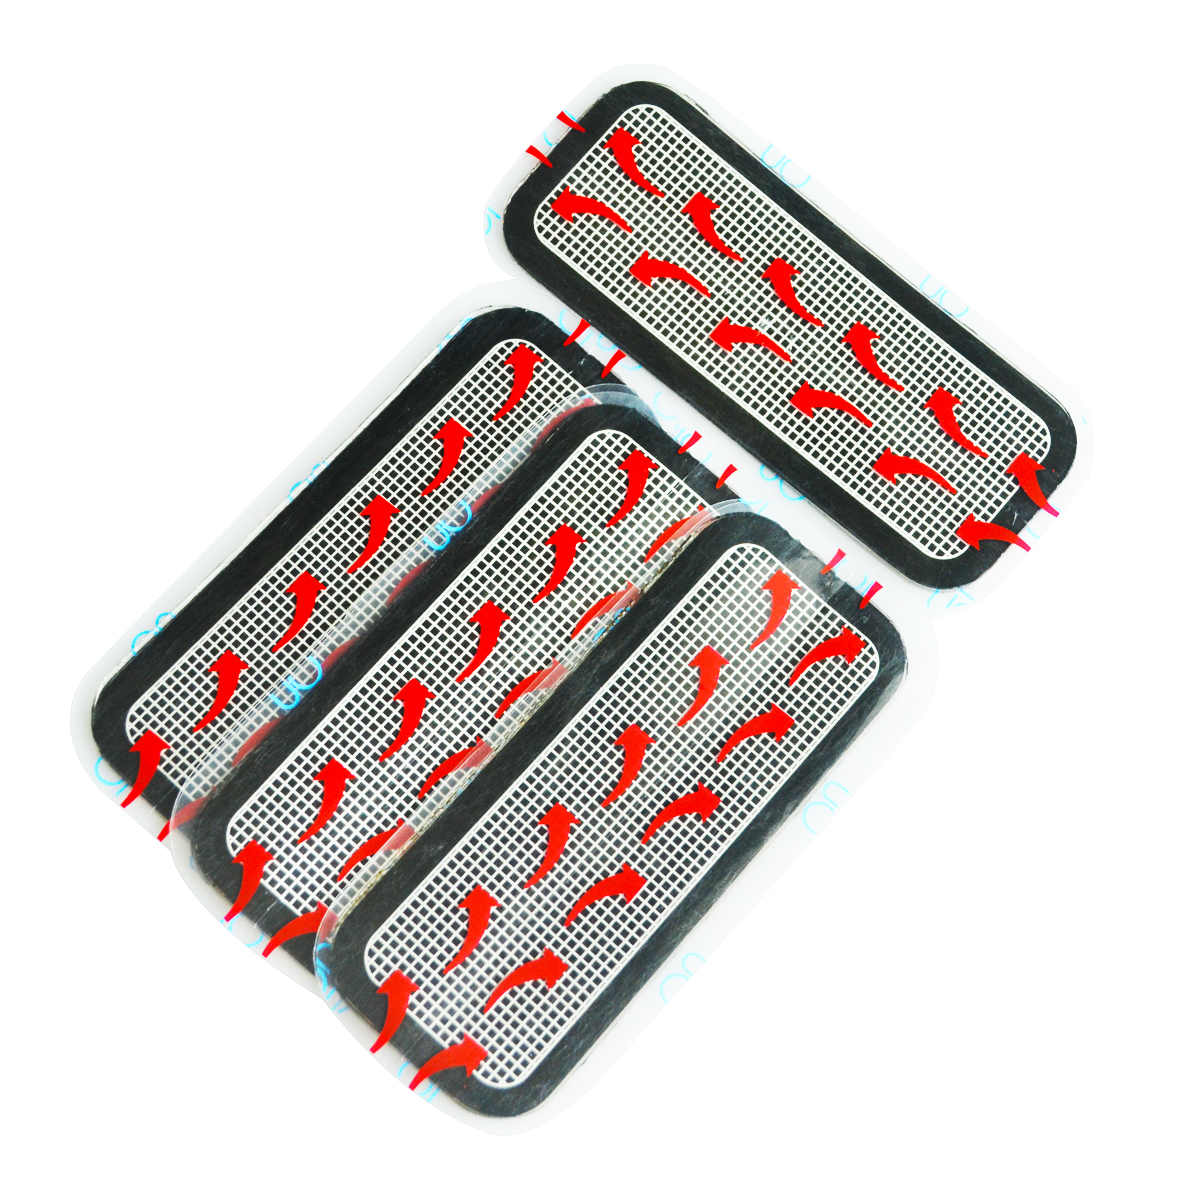 20Pack/Lot Bottom replacement pads hip pain relief